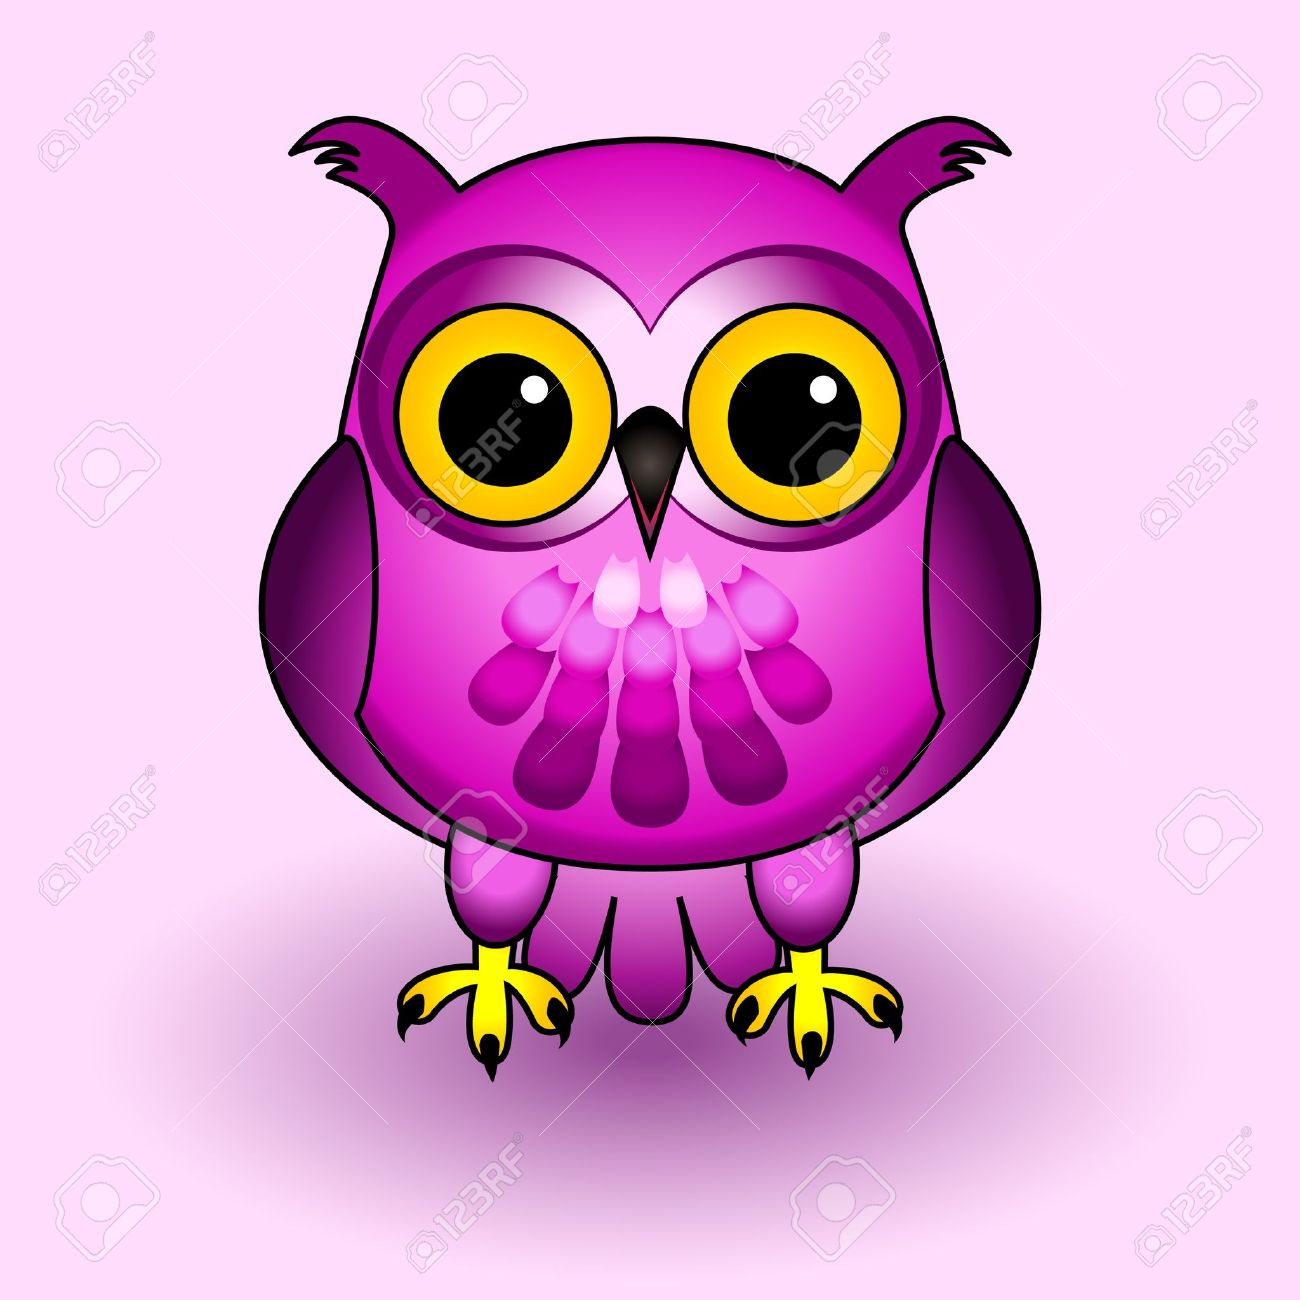 Fun and cute owl cartoon character all in pink and purple tones fun and cute owl cartoon character all in pink and purple tones over soft voltagebd Image collections